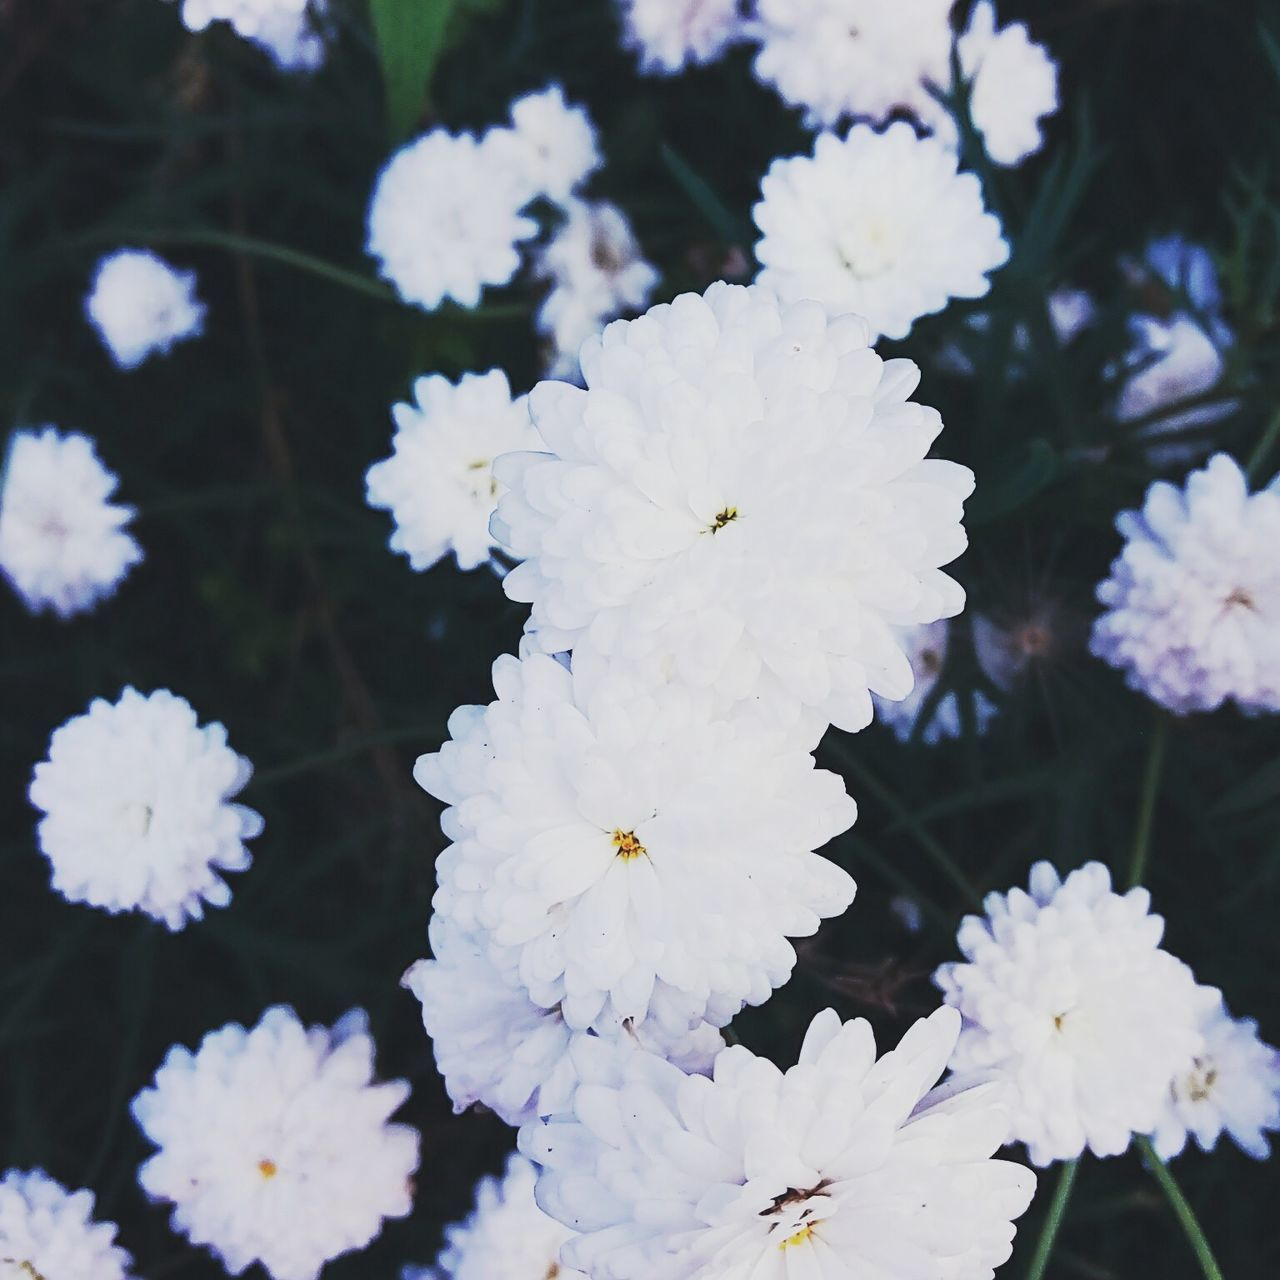 Artistic Beauty In Nature Close-up Flower Flowers Fragility Nature No People Outdoors White Color Winter